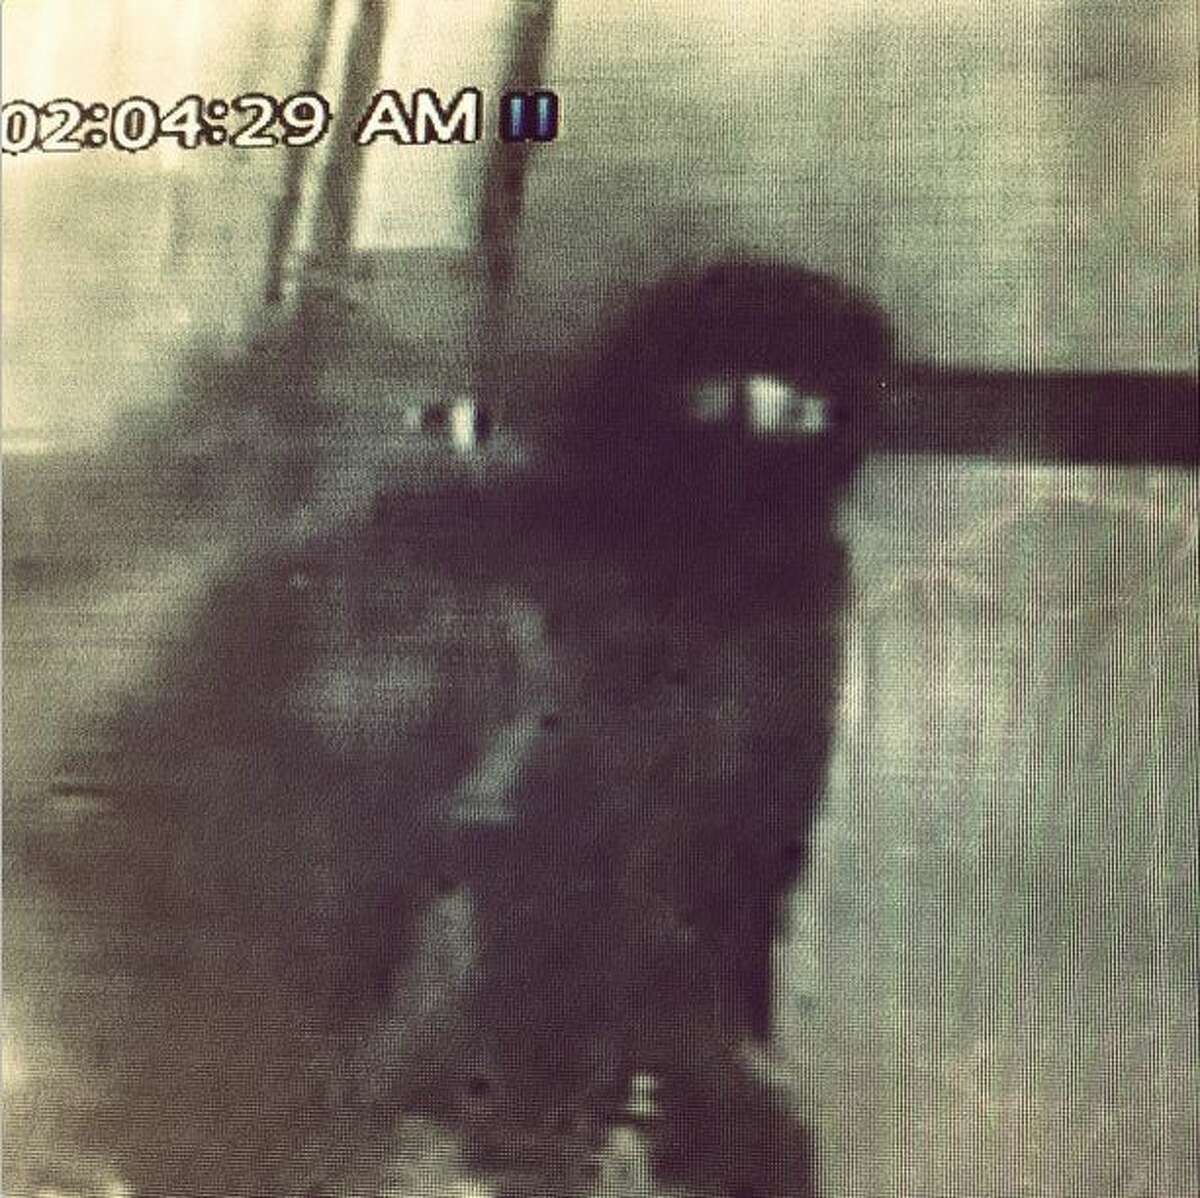 Jason Dady, owner/chef of Two Bros. BBQ Market, posted this photo from a security camera of an alleged burglar who took six cases of brisket, porkloin, sausage chicken among other meats weighing 450 pounds and valued at $2,500 from the restaurant in January 2015.